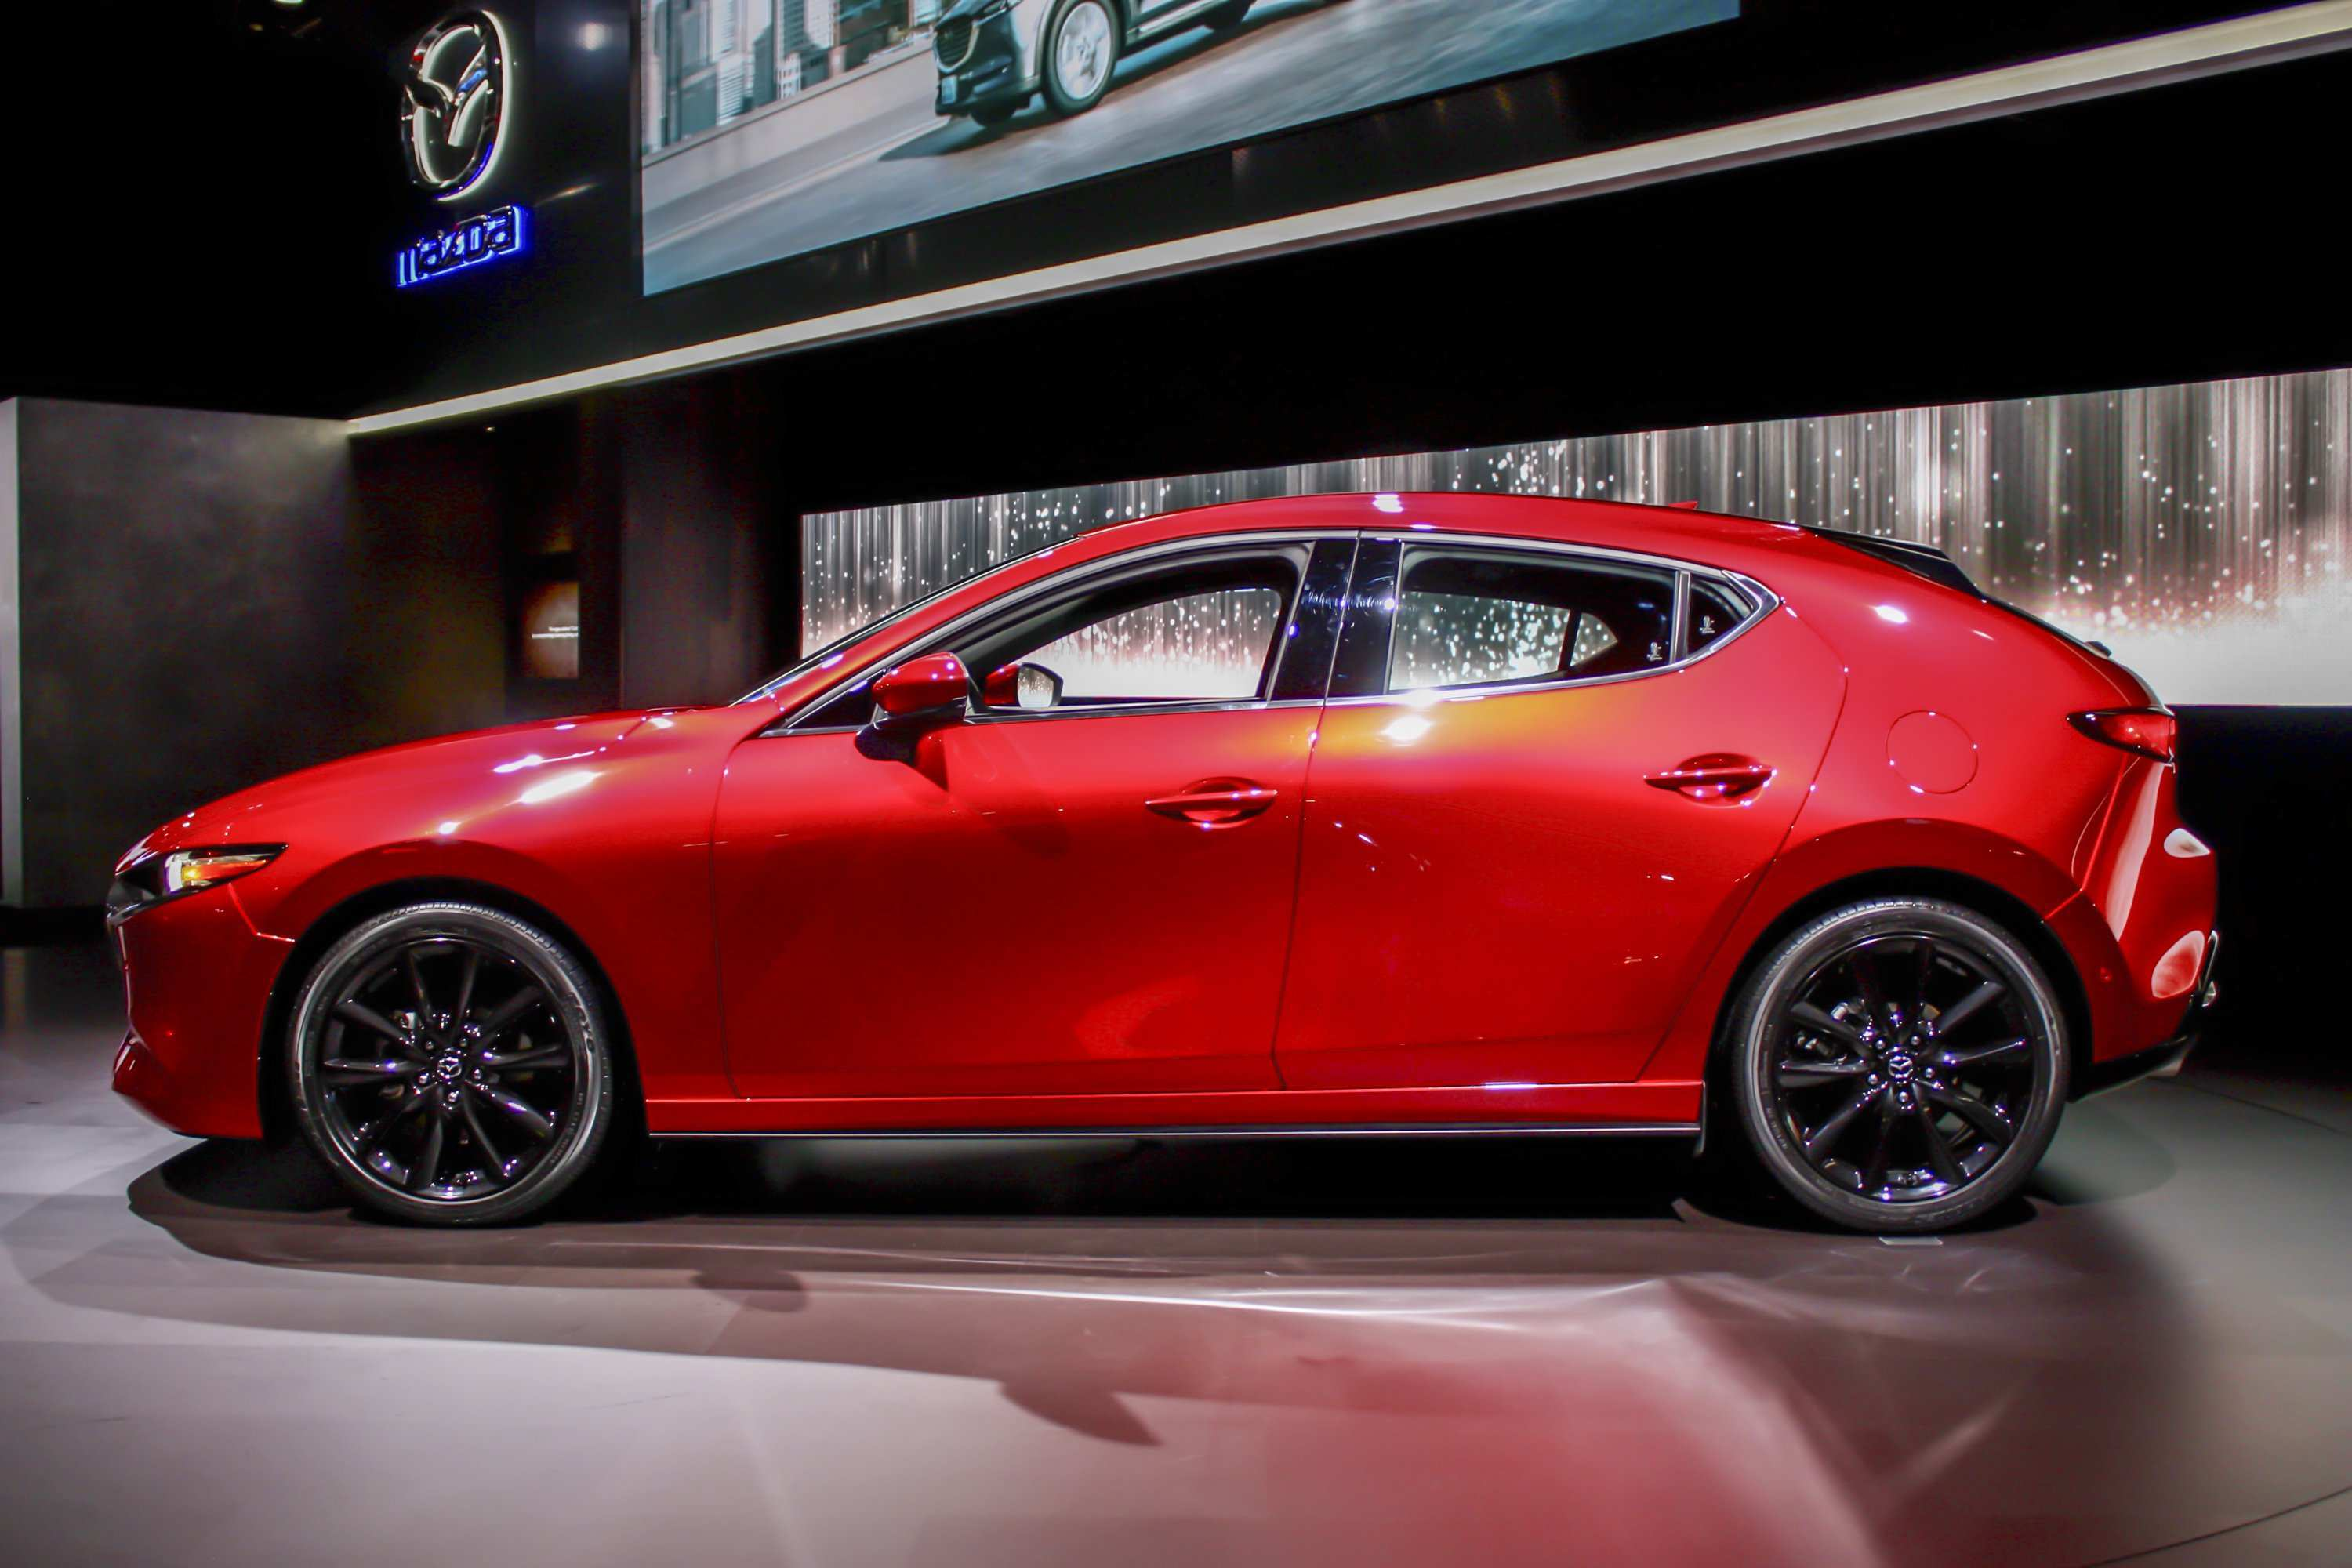 24 The Best 2020 Mazda 3 Hatchback Price Price Design And Review